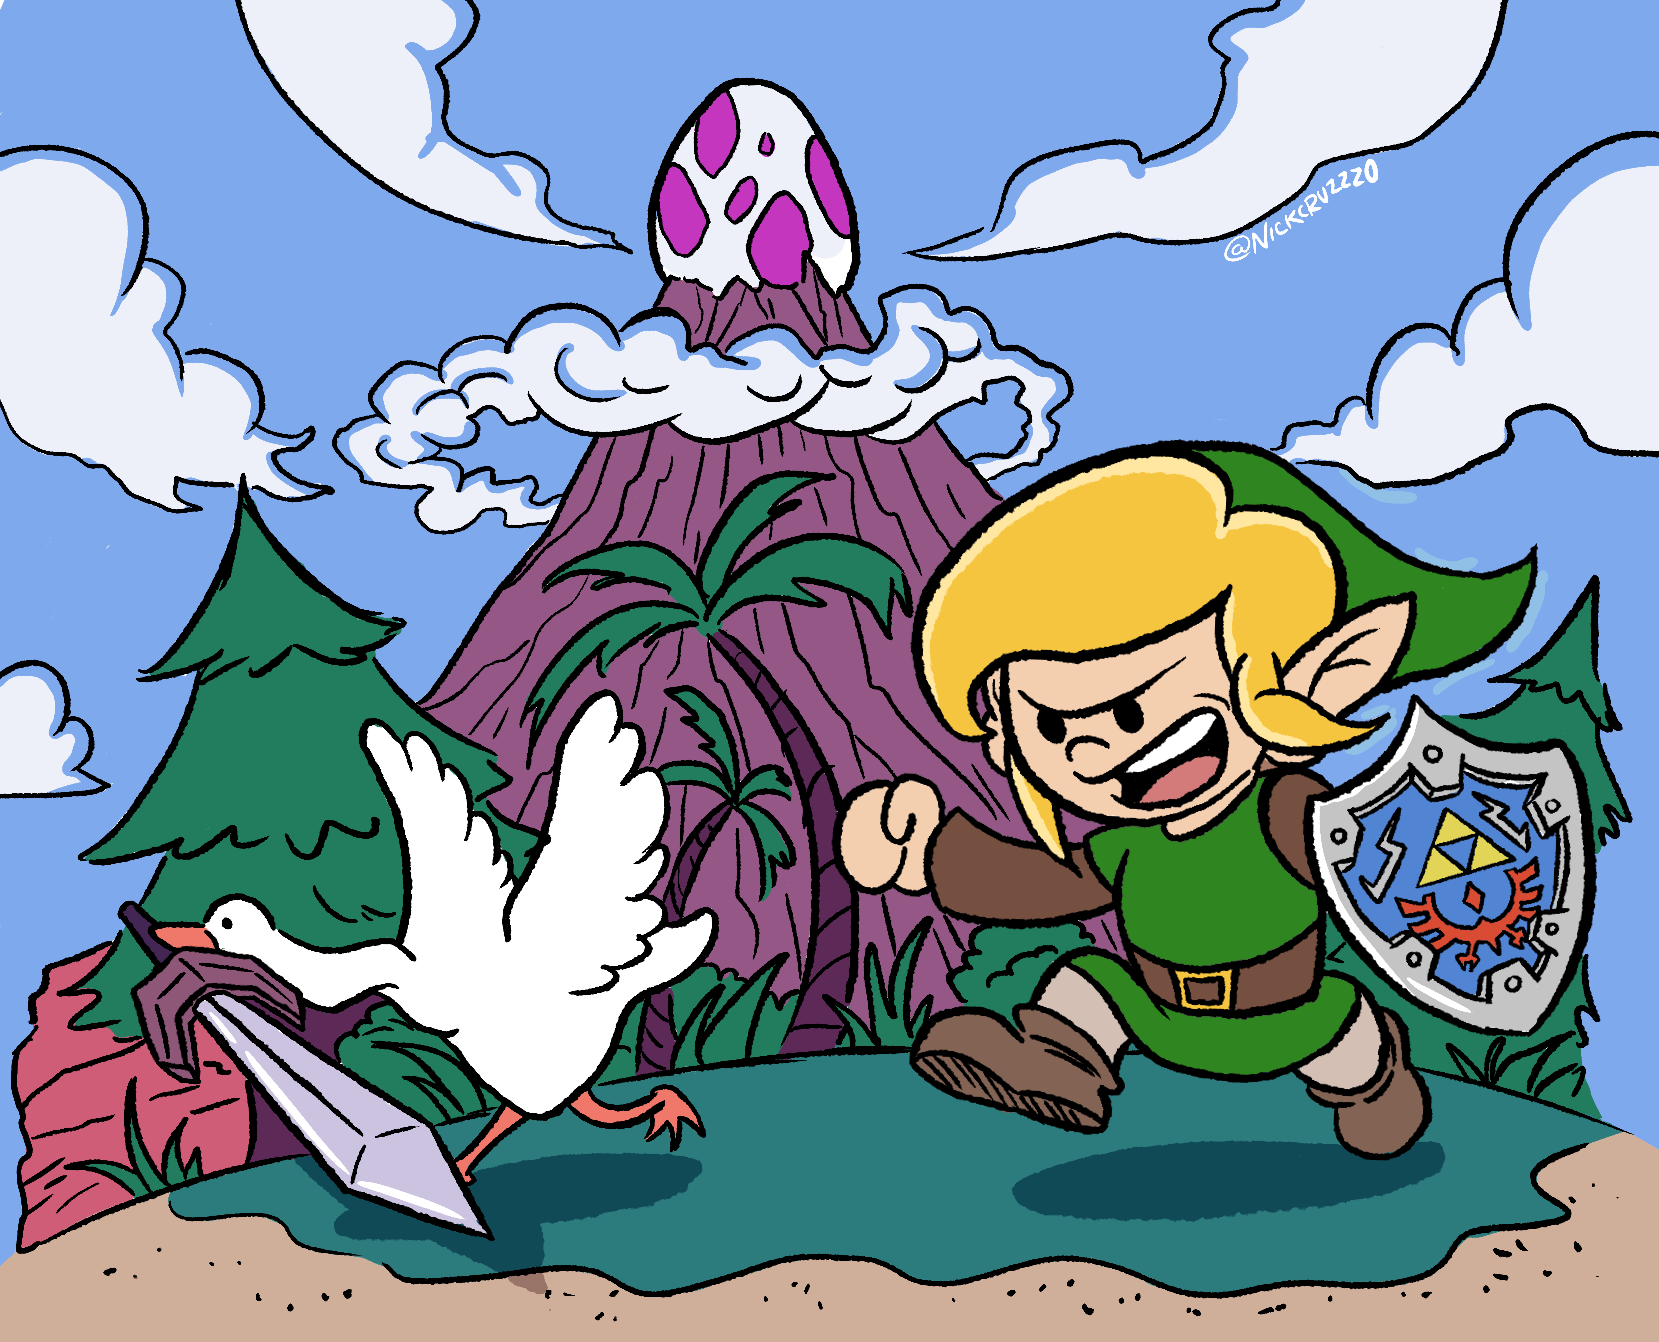 Link & the Goose